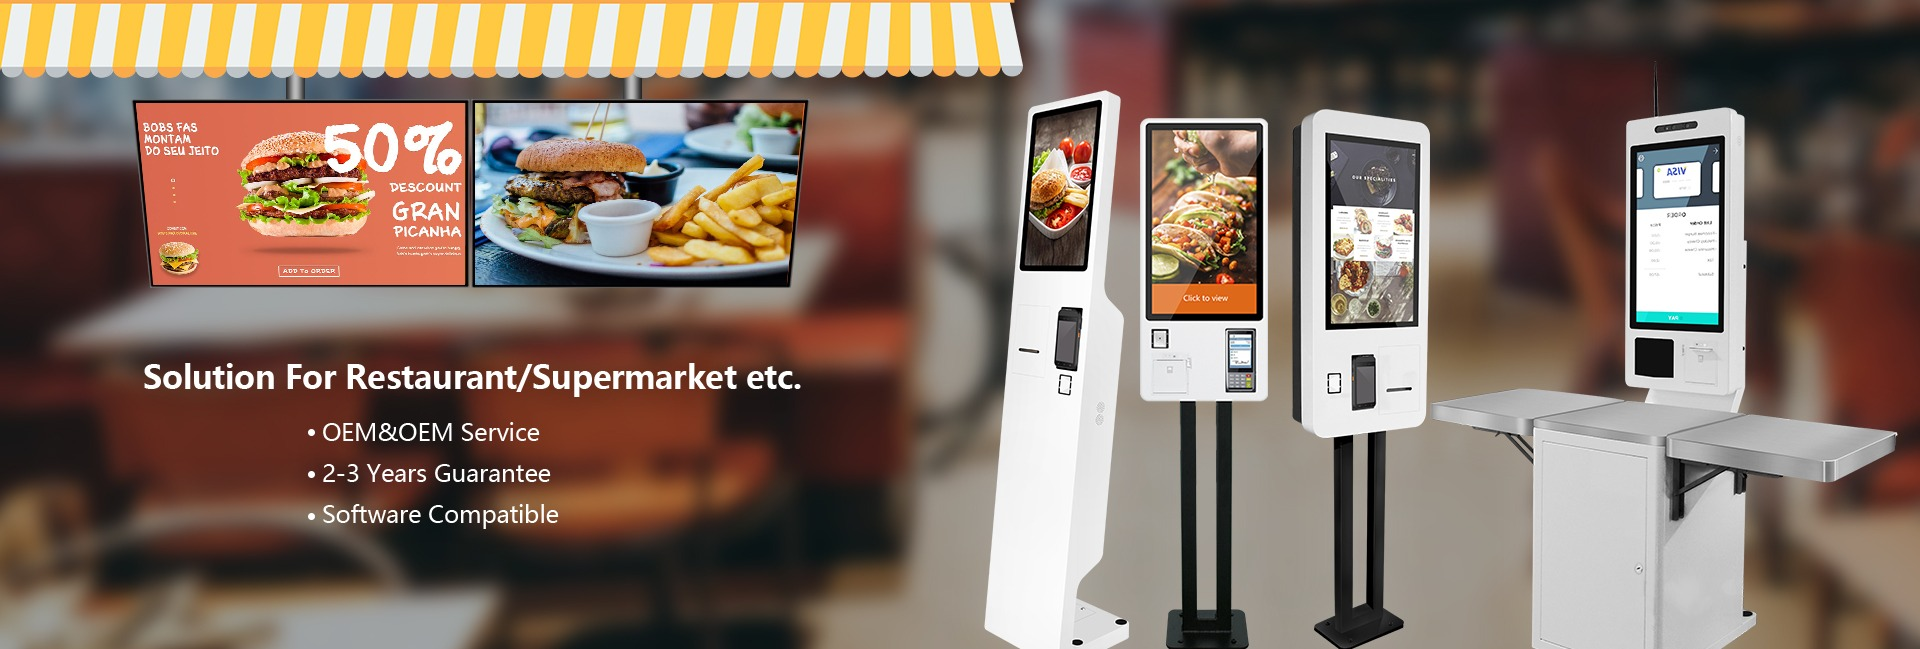 demo restaurant sunderland Digital Screens and self order kiosk